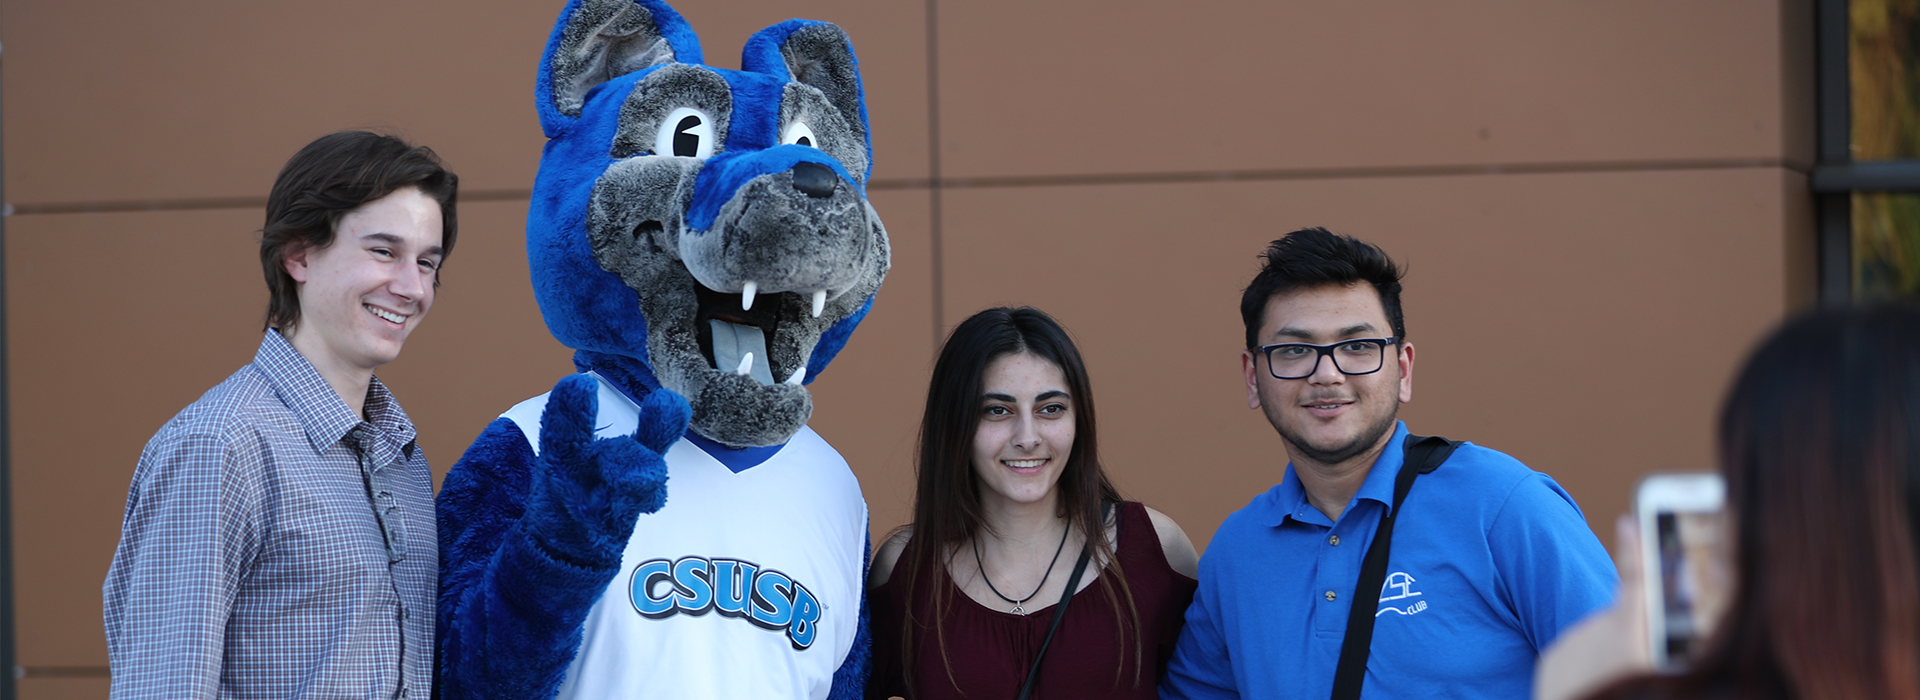 Homecoming celebration set for CSUSB on Oct. 19